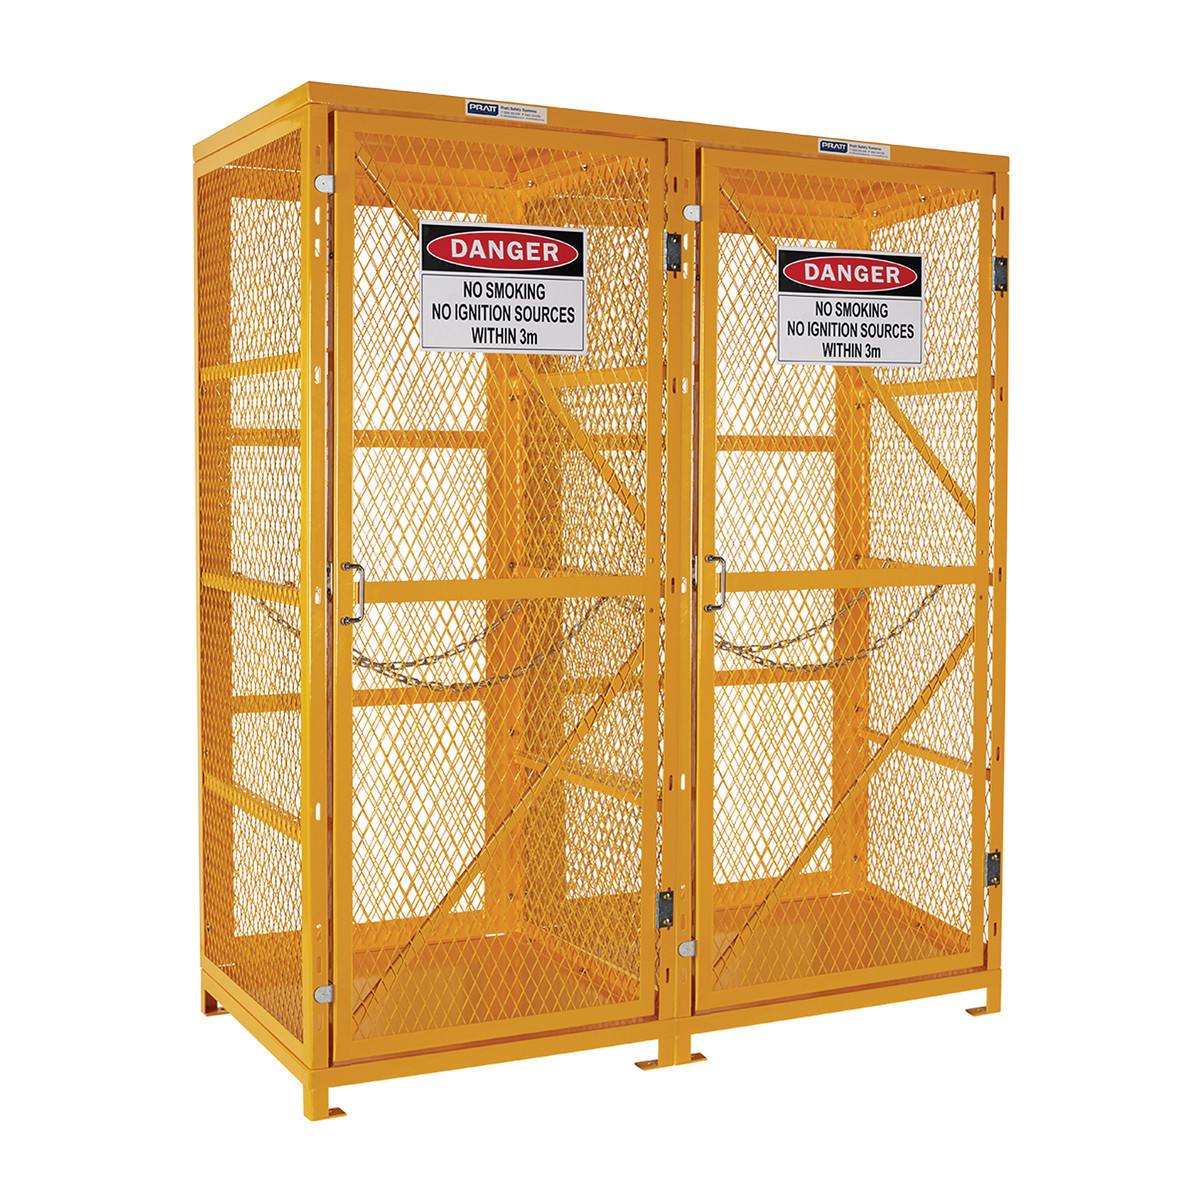 Flat Packed Gas Cylinder Storage Cage - 1 Storage Level Up To 18 Cylinders